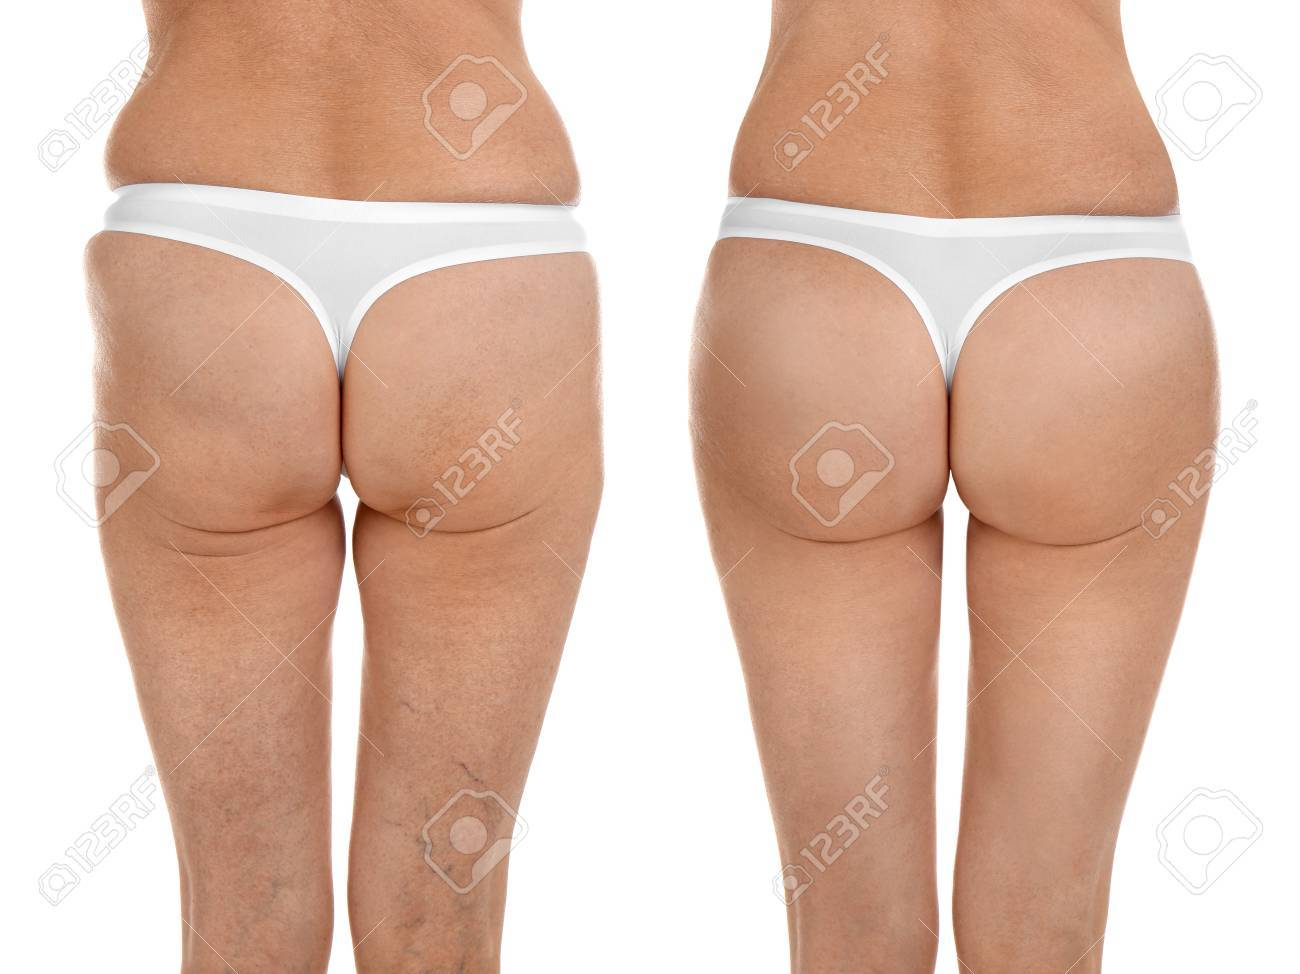 Mature woman body before and after liposuction  Plastic surgery